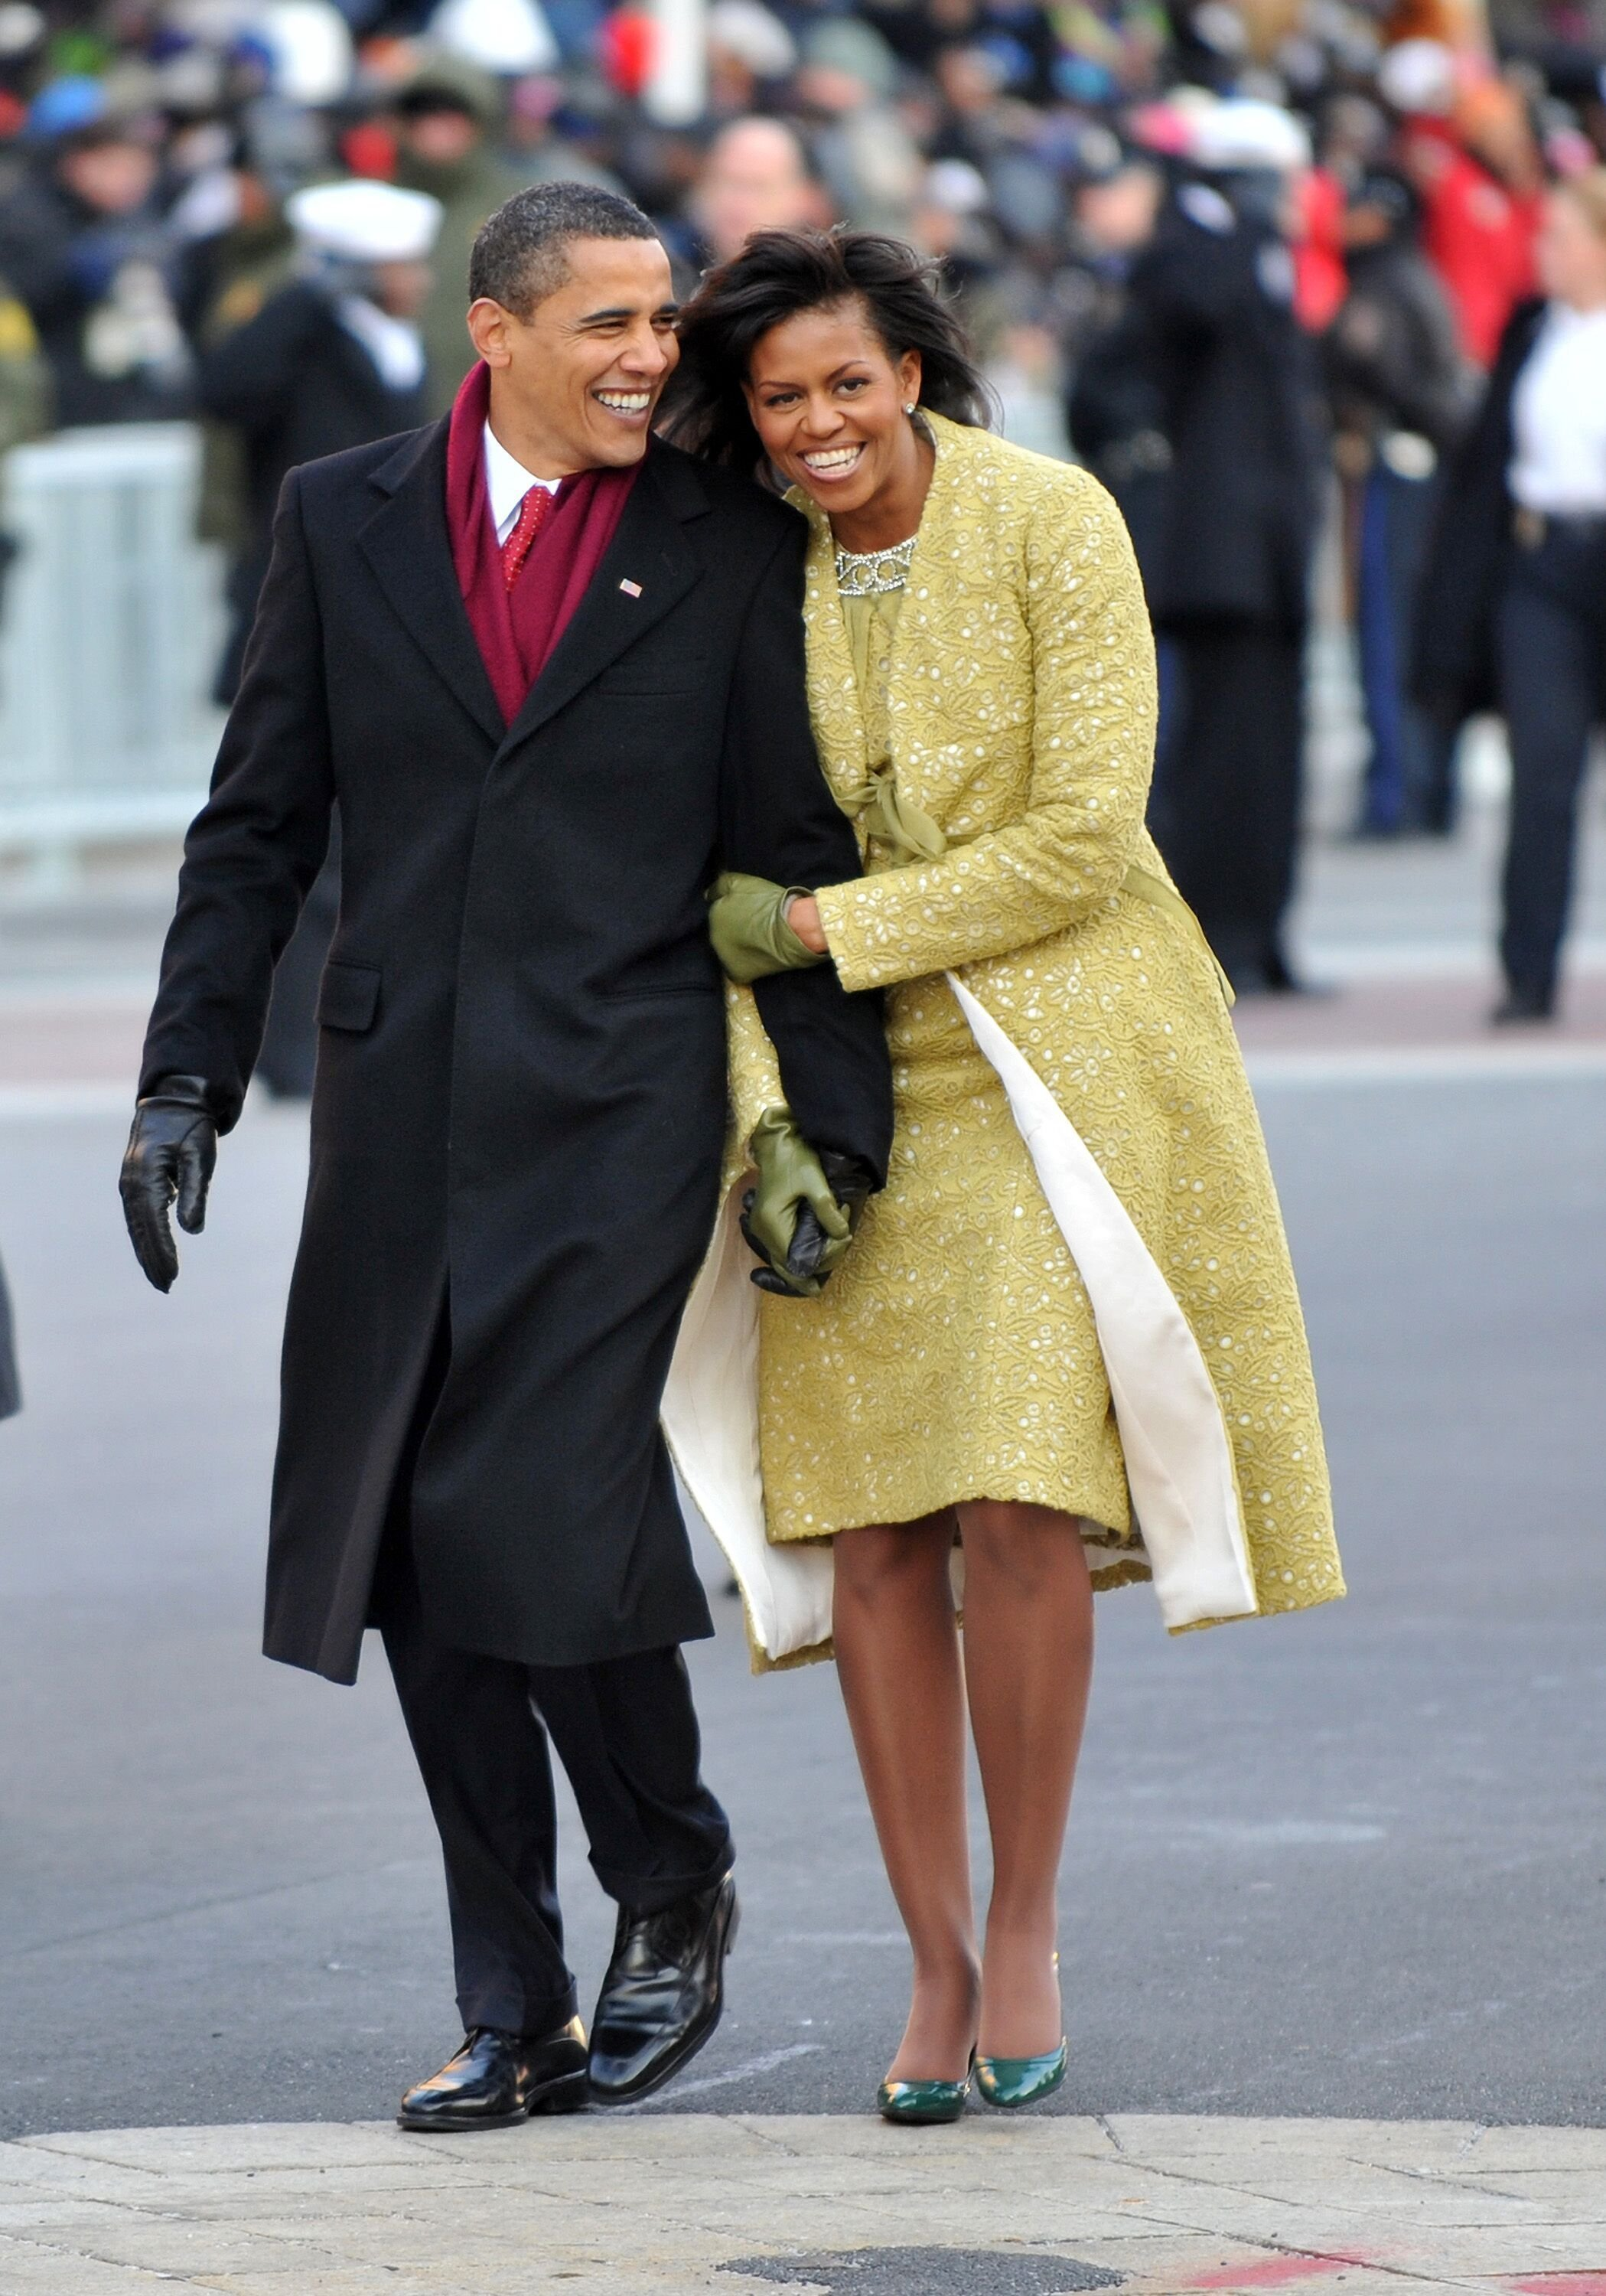 Former President Barack Obama and First lady Michelle Obama at the 2009 Inaugural Parade in Washington, DC | Photo: Ron Sachs-Pool/Getty Images